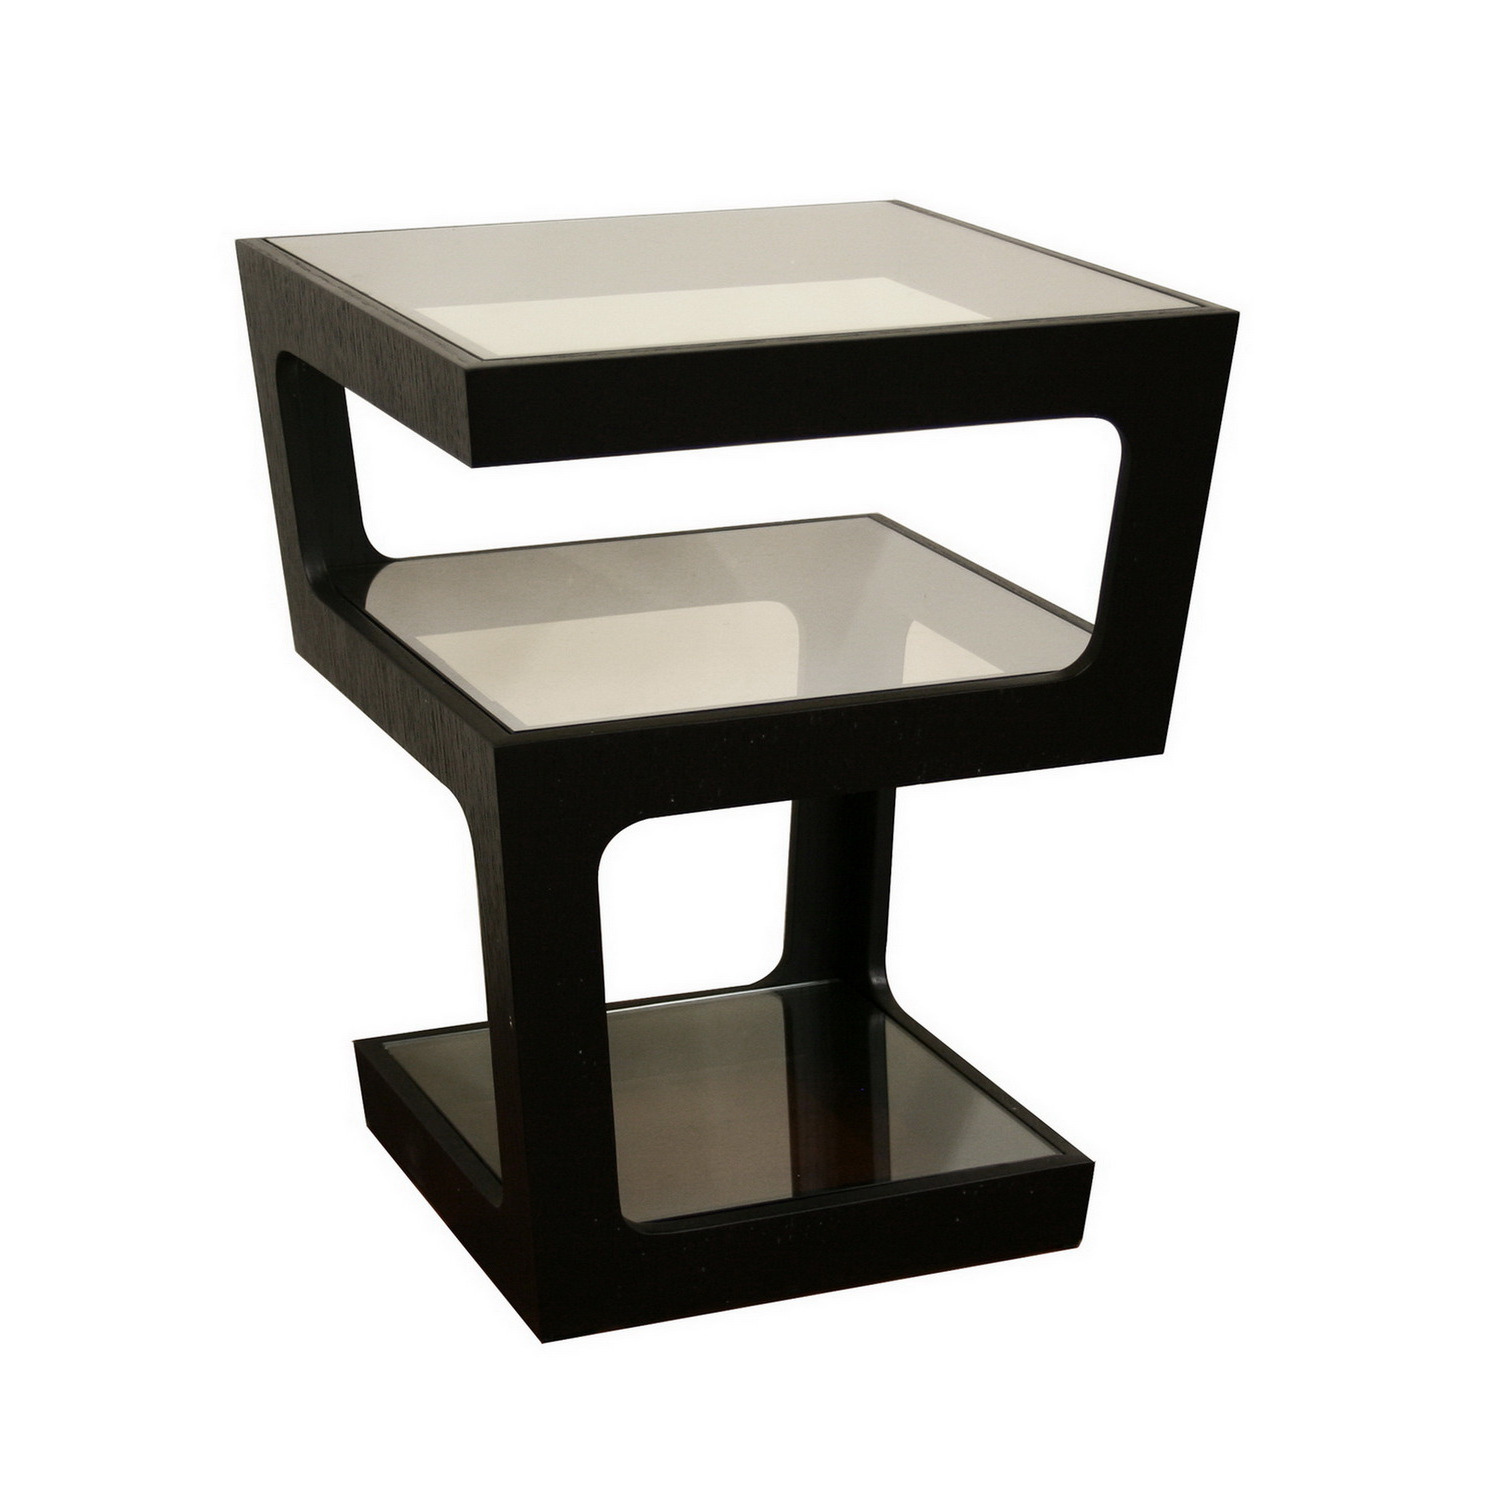 Small accent tables large size of coffee tablecoffee lamp tables small gray accent table silver Black glass side tables for living room